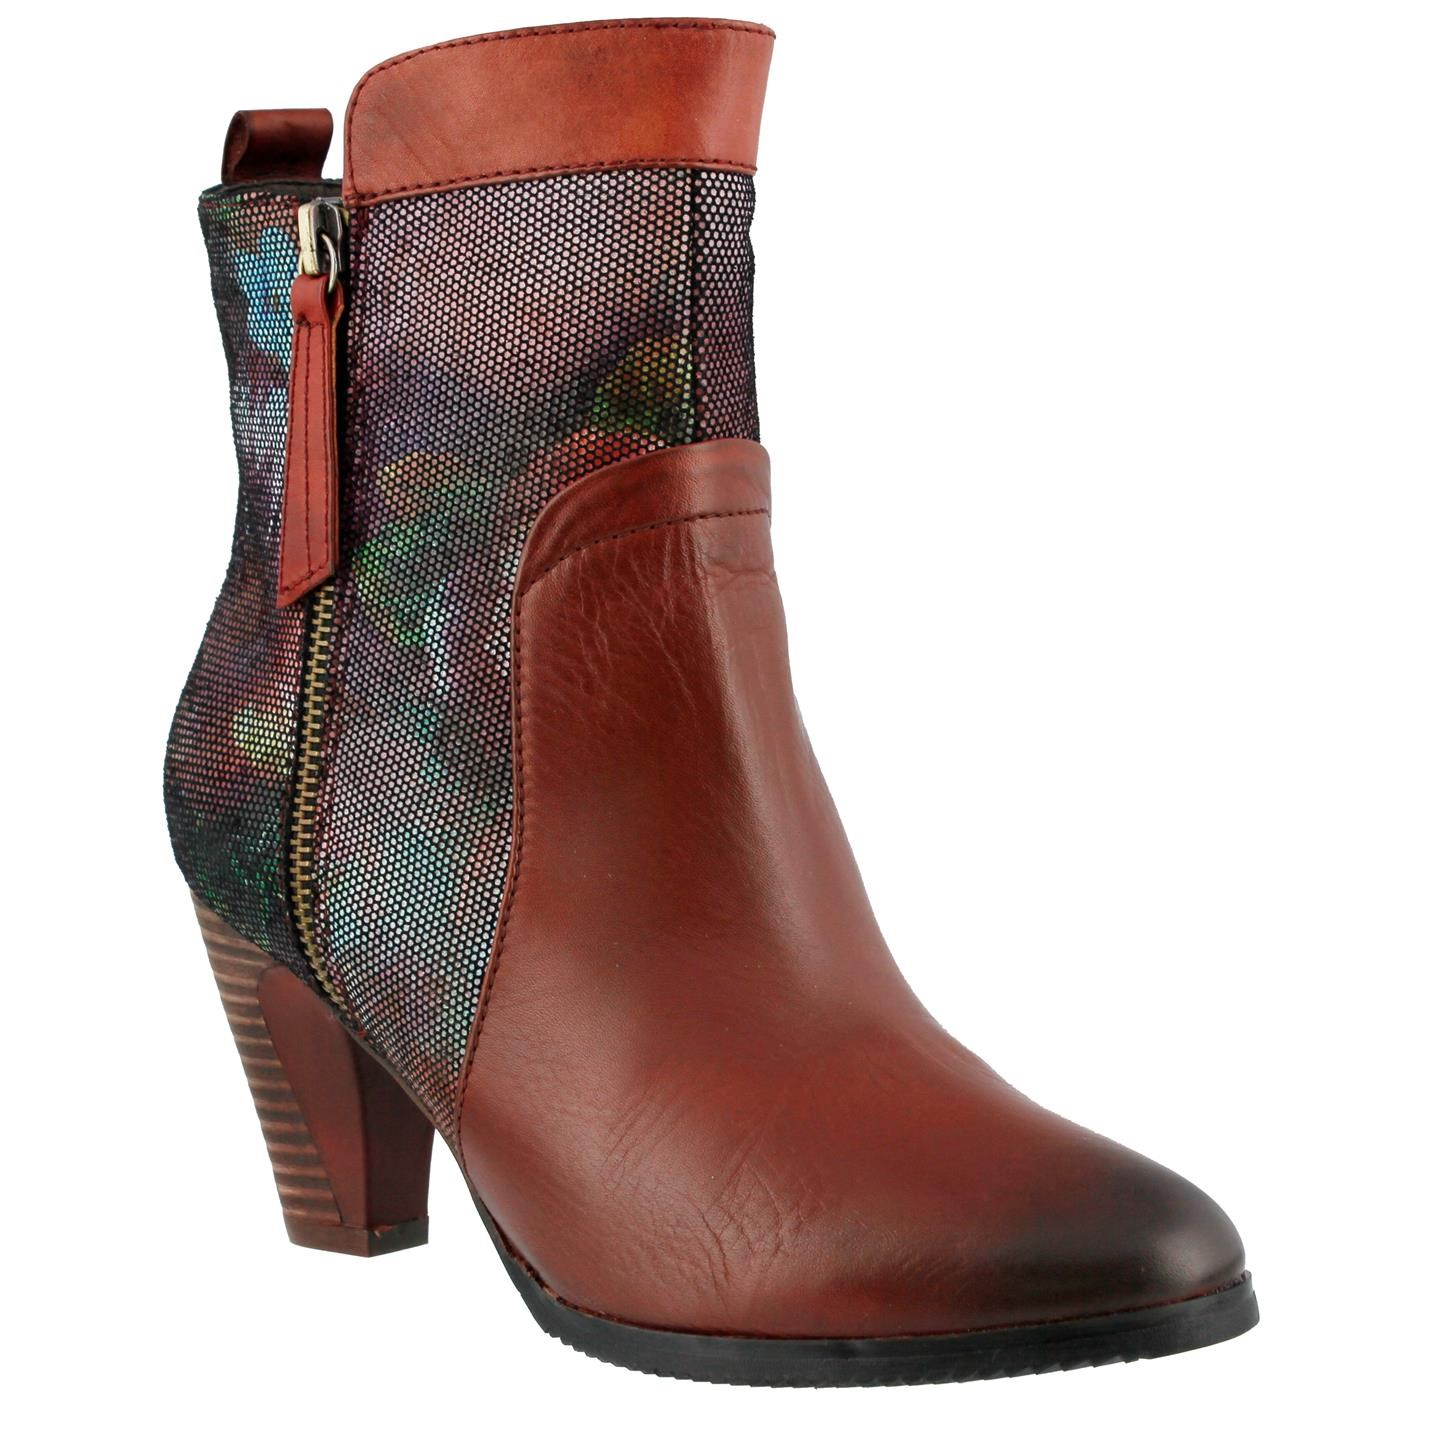 L'Artiste Moonlight By Spring Step Red Leather Boots 37 EU   7 US Women by Spring Step